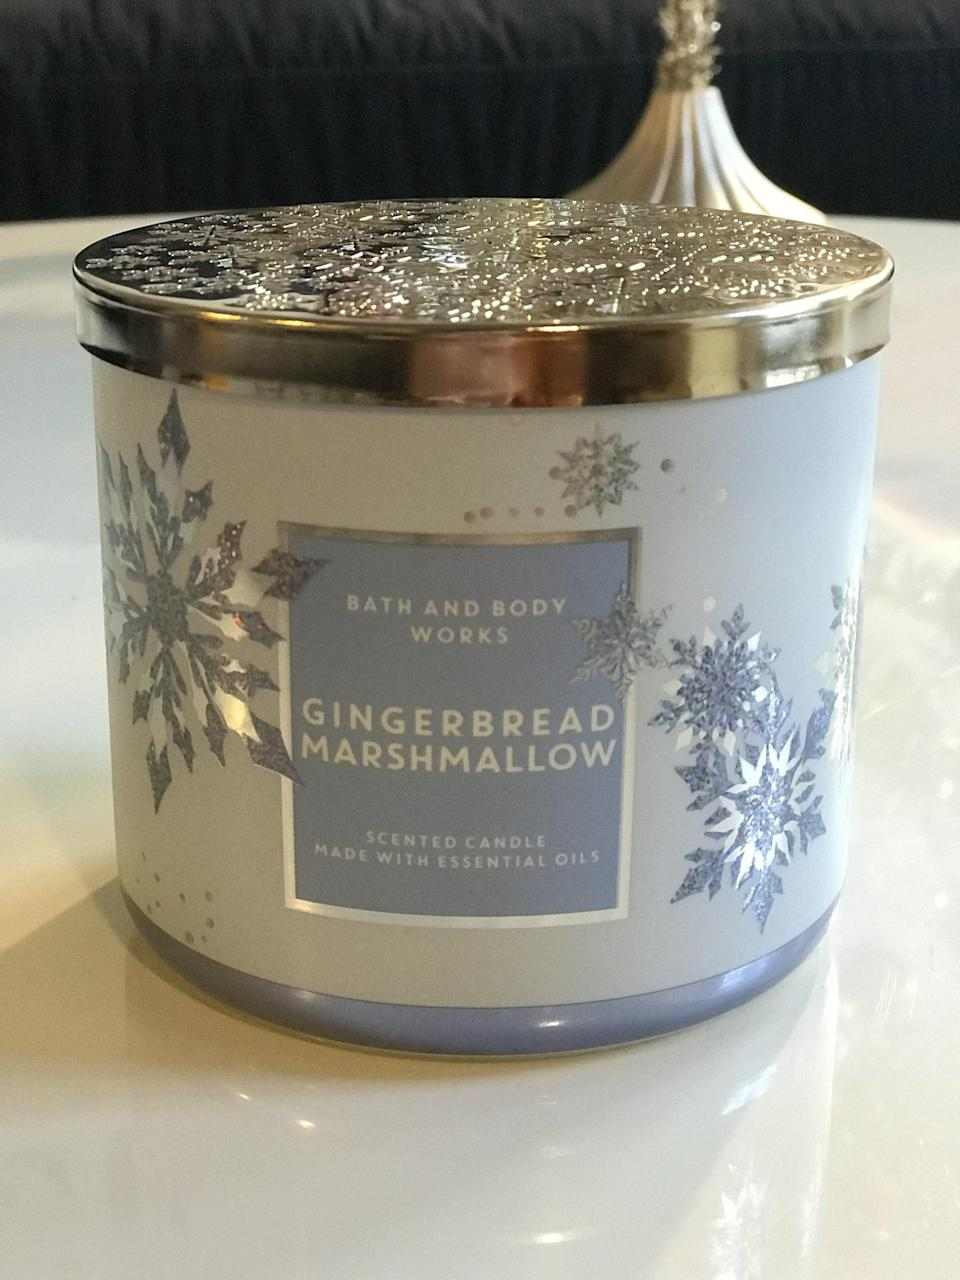 <p><span>Gingerbread Marshmallow 3-Wick Candle</span> ($15, originally $25)</p> <p><strong>What It Smells Like:</strong> Sweet with hints of spiced rum, which I especially appreciate.</p>